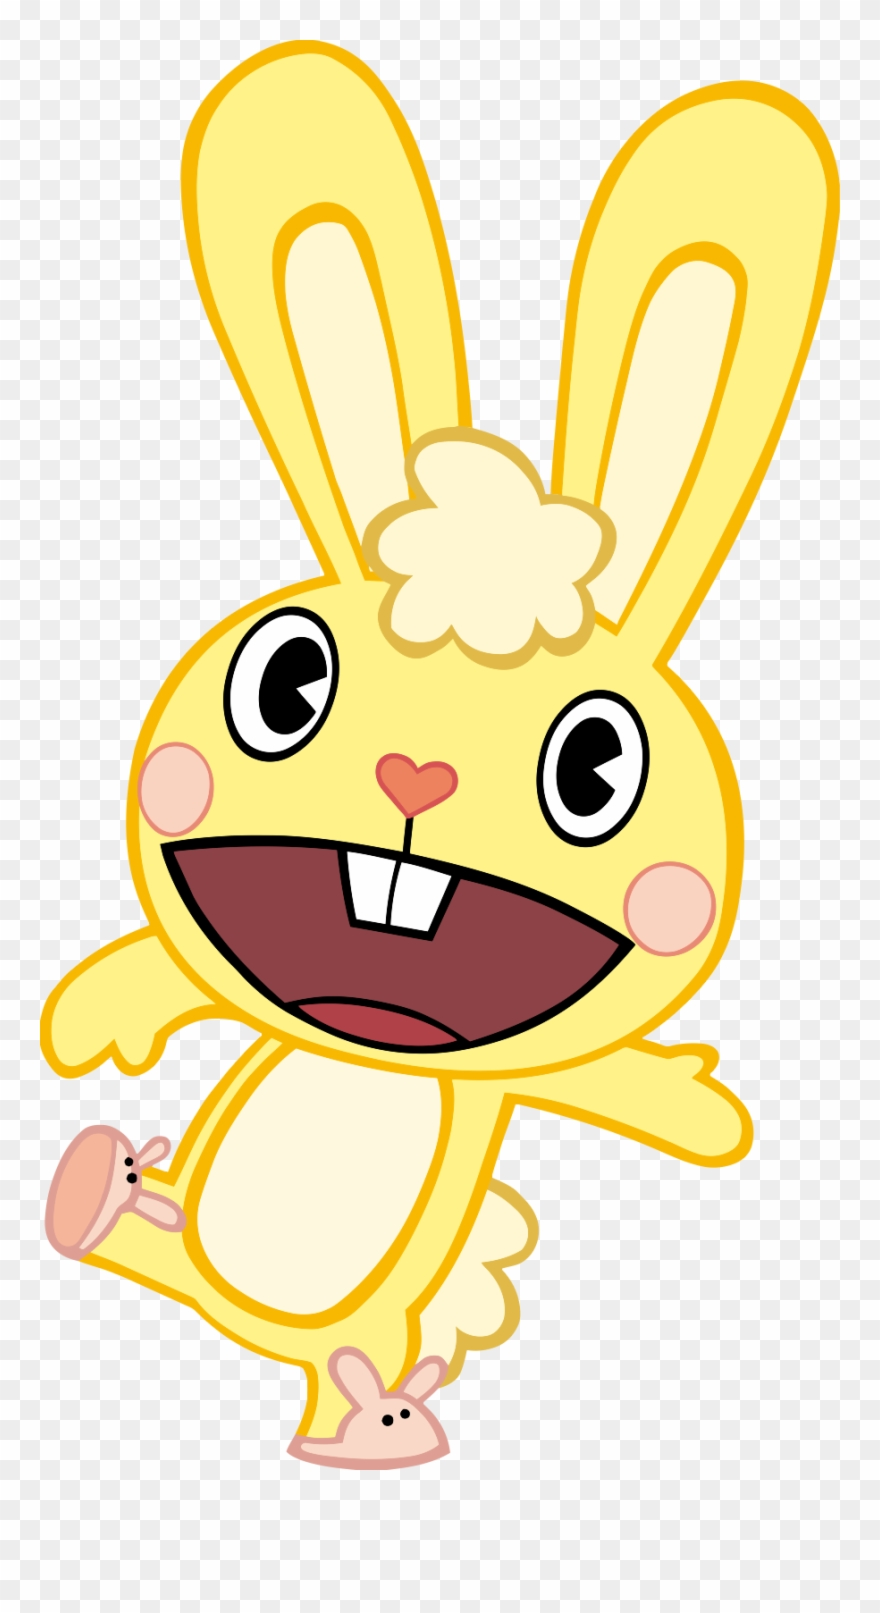 Happy tree friends clipart svg library library Cuddling Clipart Transparent - Happy Tree Friends Rabbit - Png ... svg library library